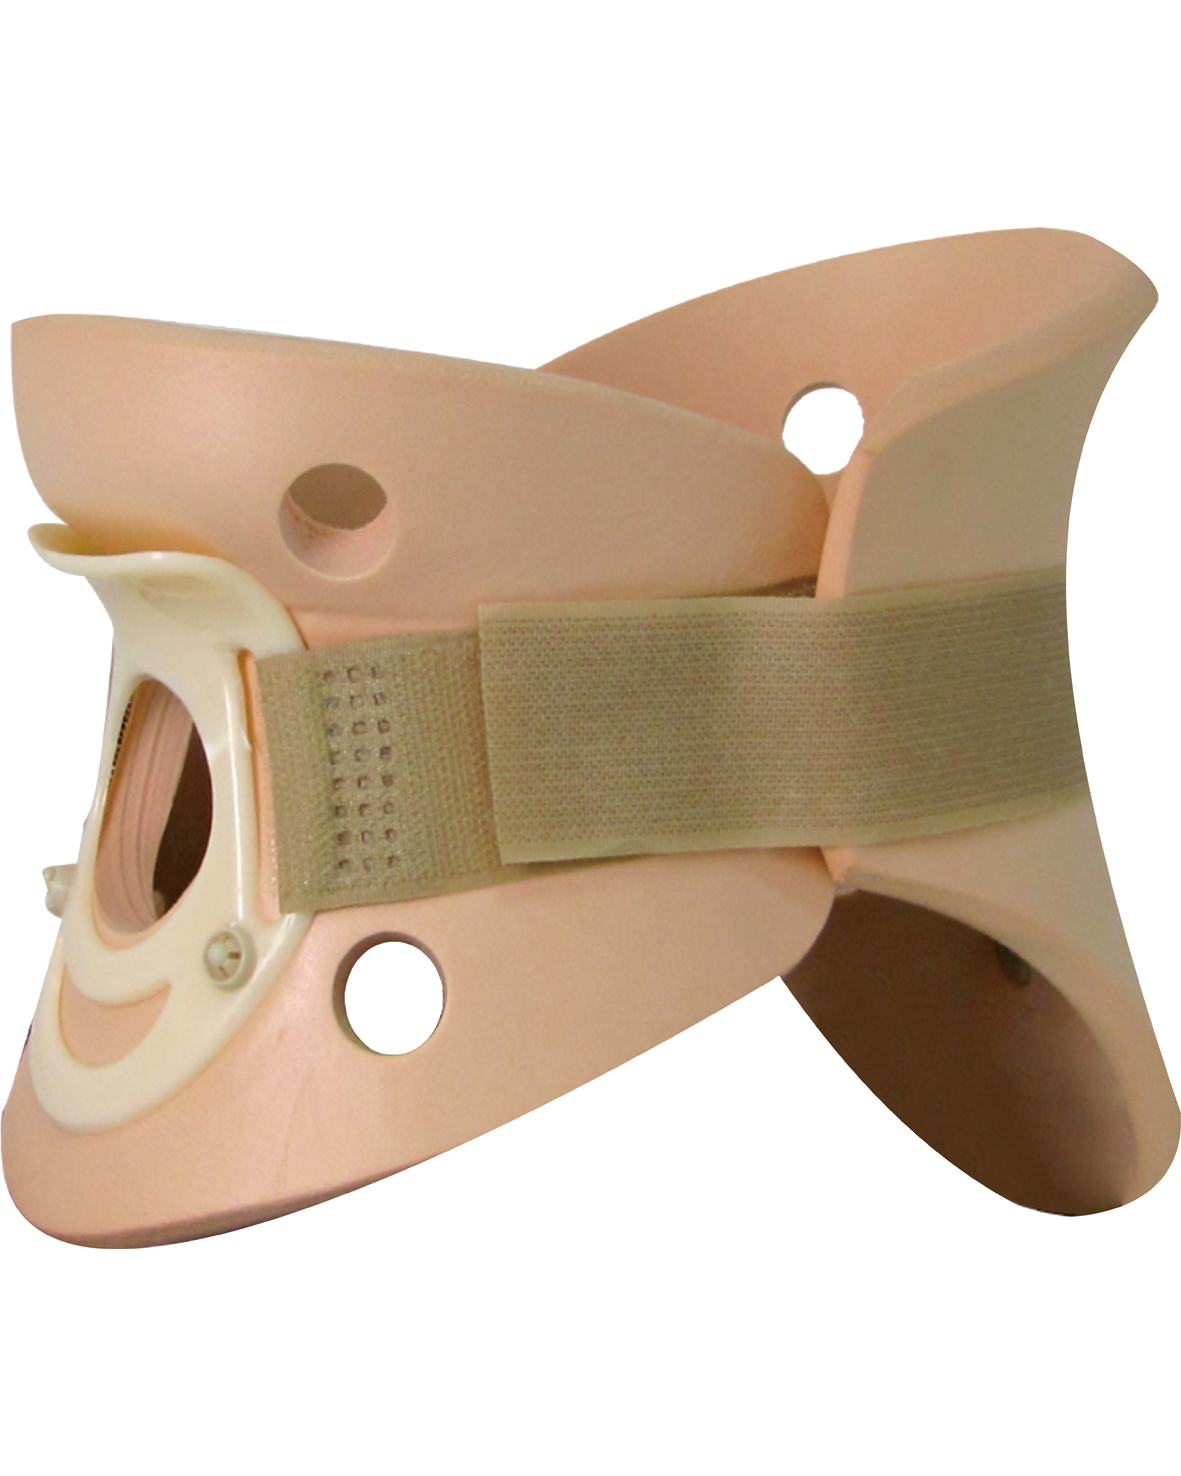 PHILADELPHIA-STYLE CERVICAL COLLAR